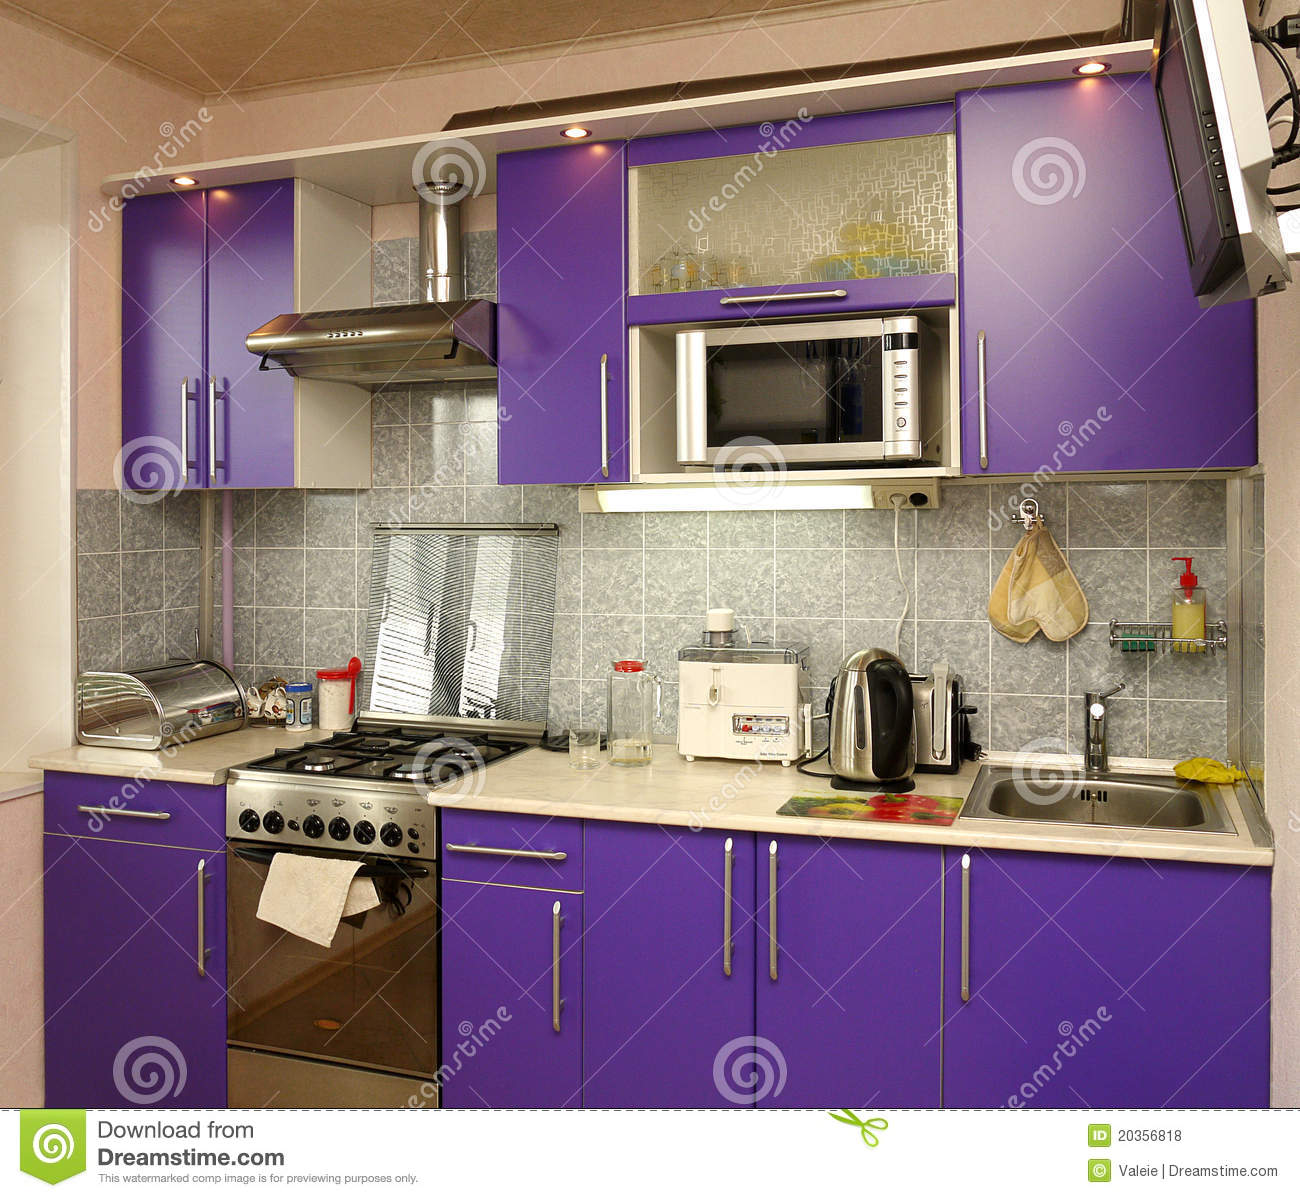 Household Appliances In Modern Kitchen Royalty Free Stock